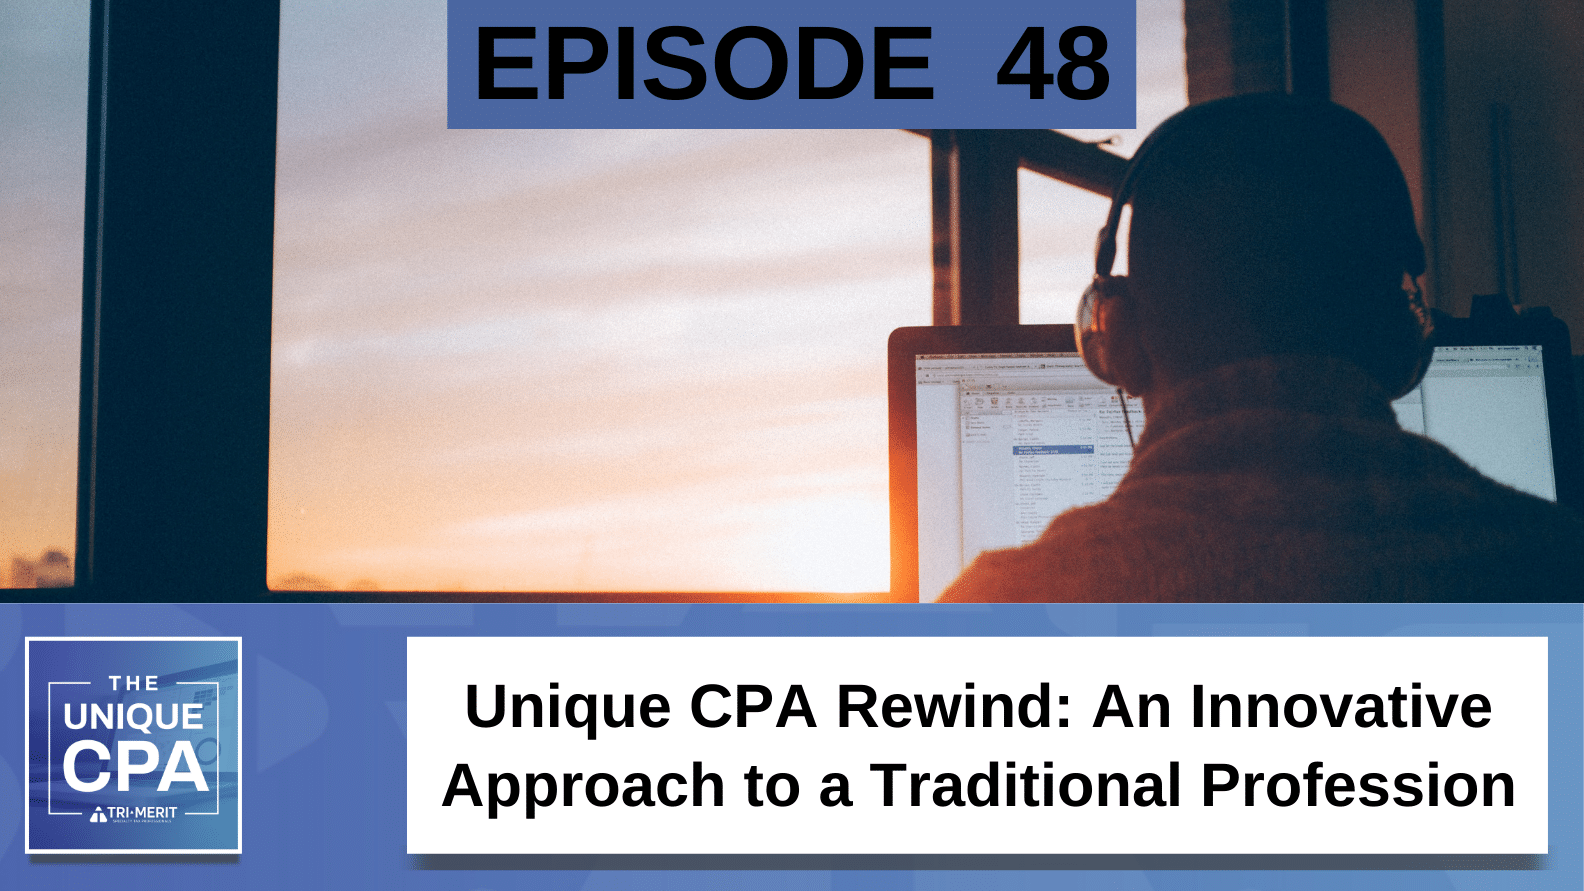 Unique CPA Featured Image Ep 48 Josh Lance - Unique CPA Rewind: An Innovative Approach to a Traditional Profession - Tri-Merit